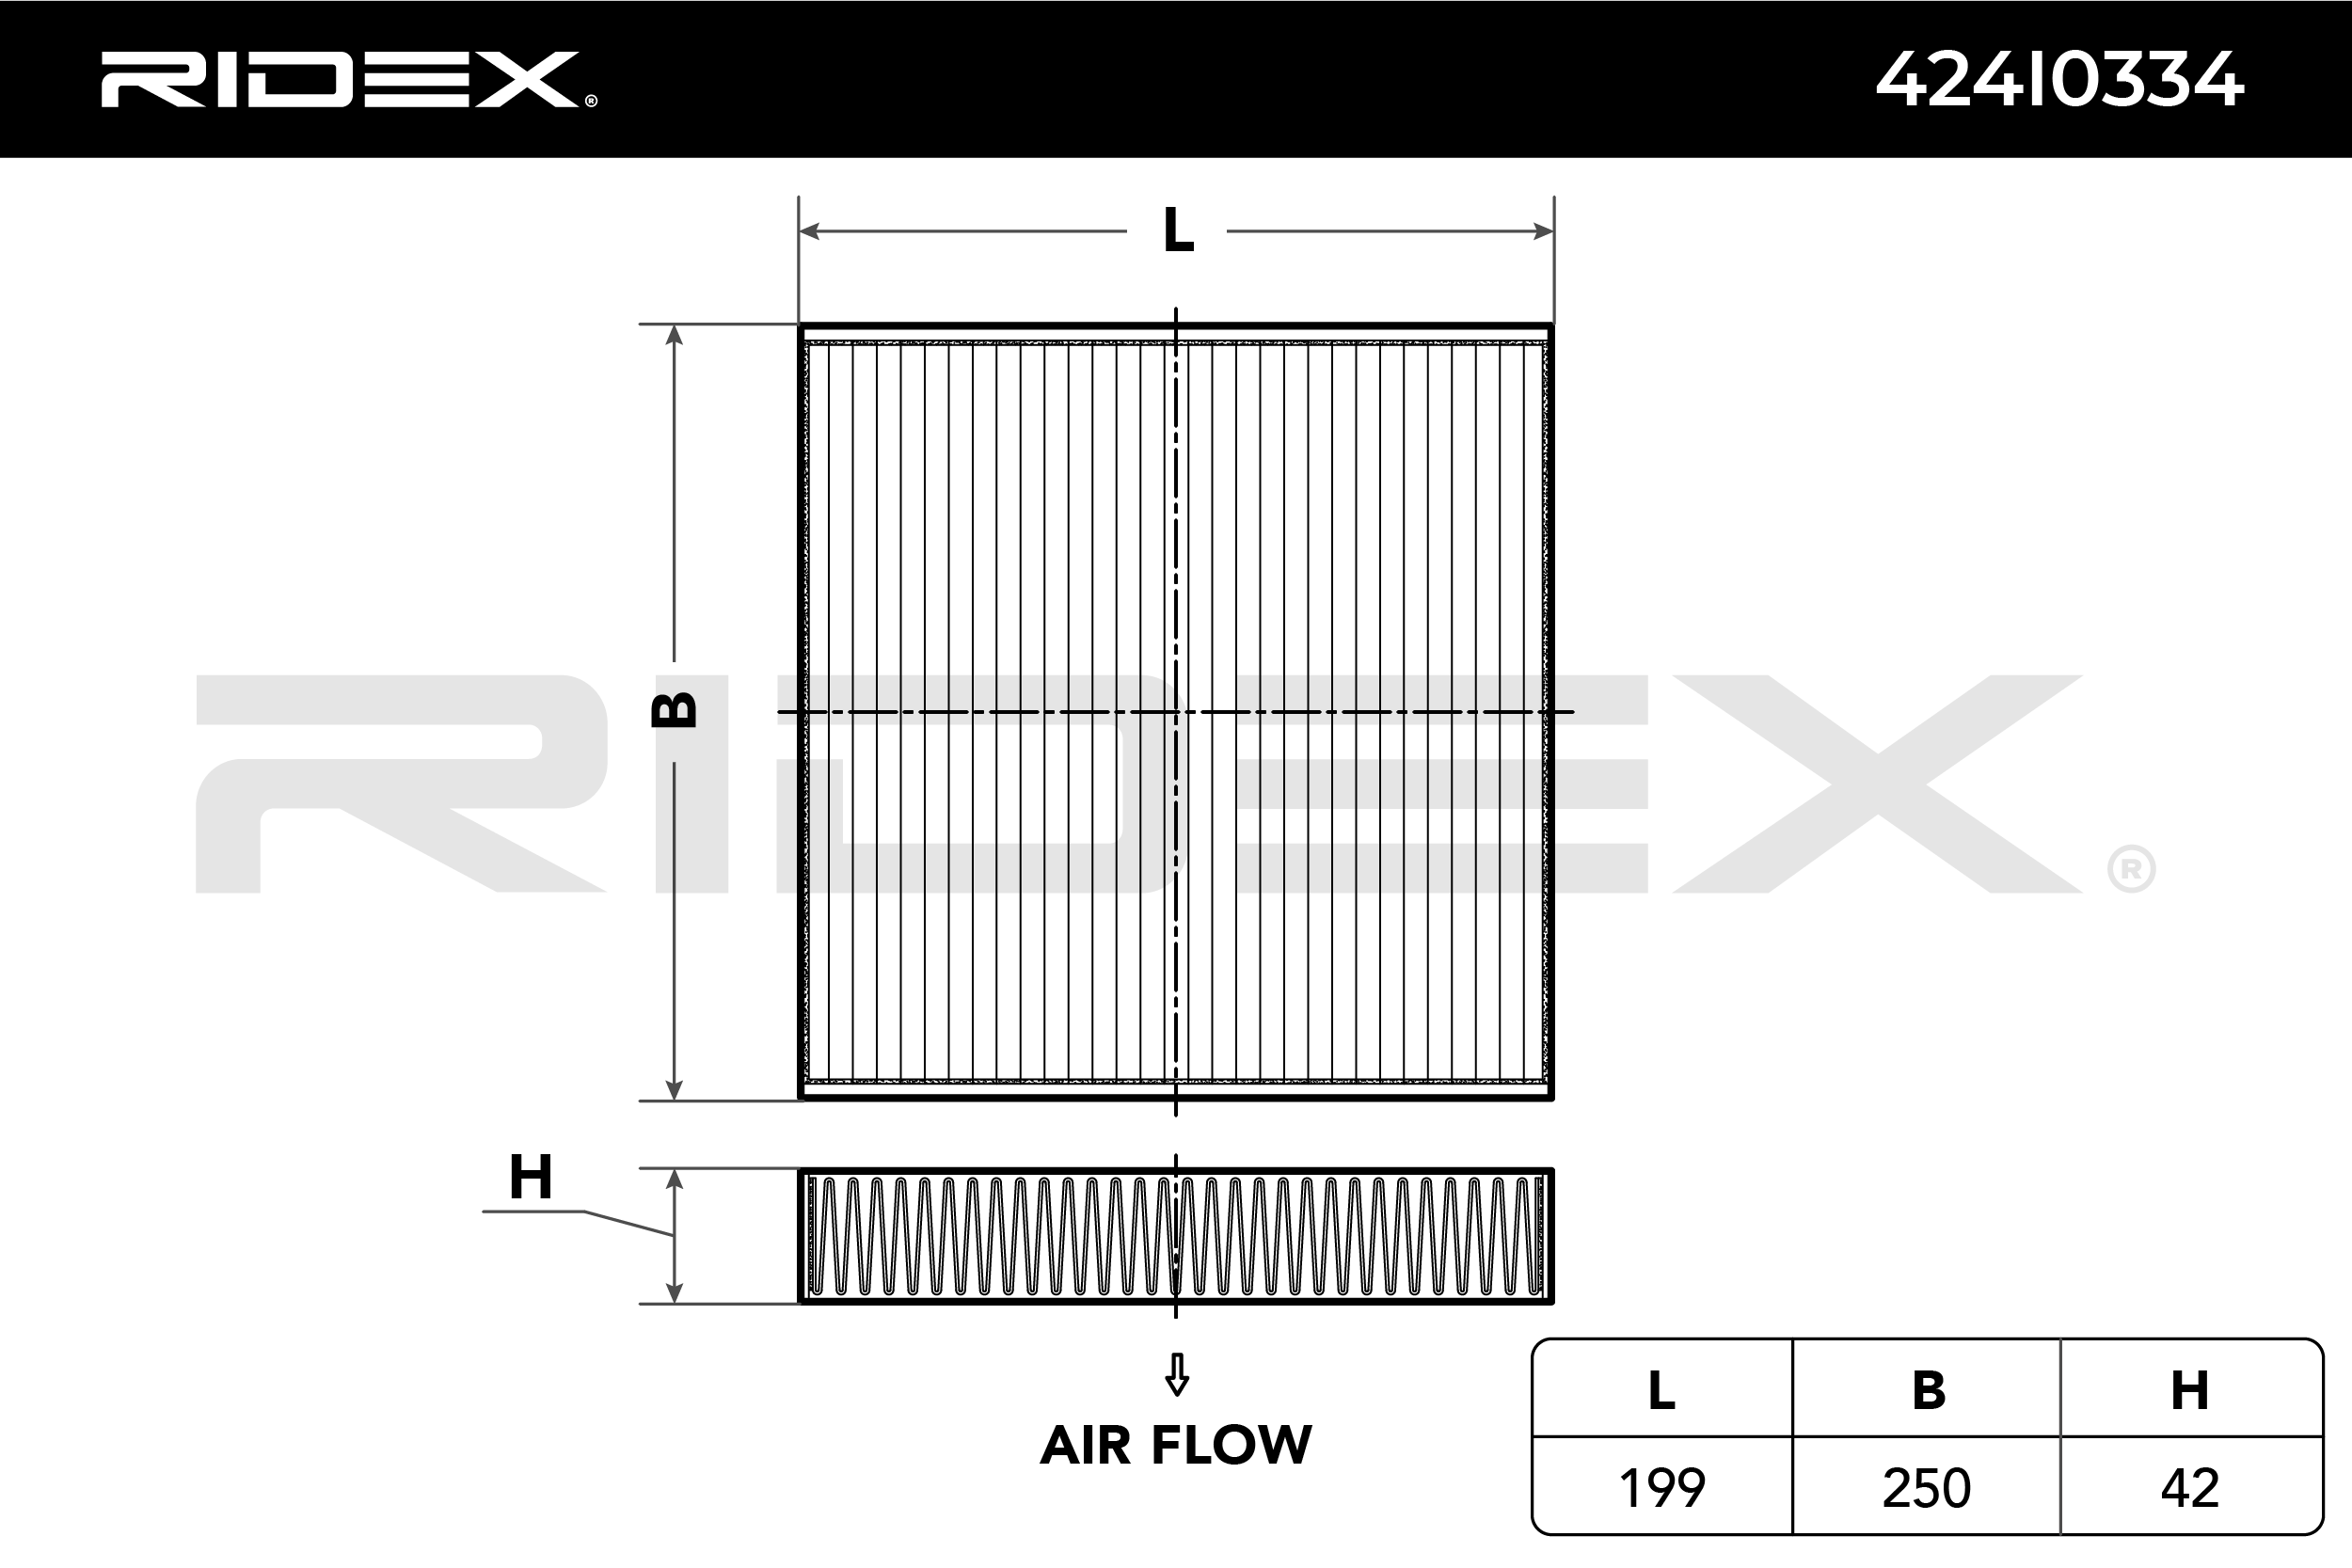 Cabin Air Filter RIDEX 424I0334 expert knowledge